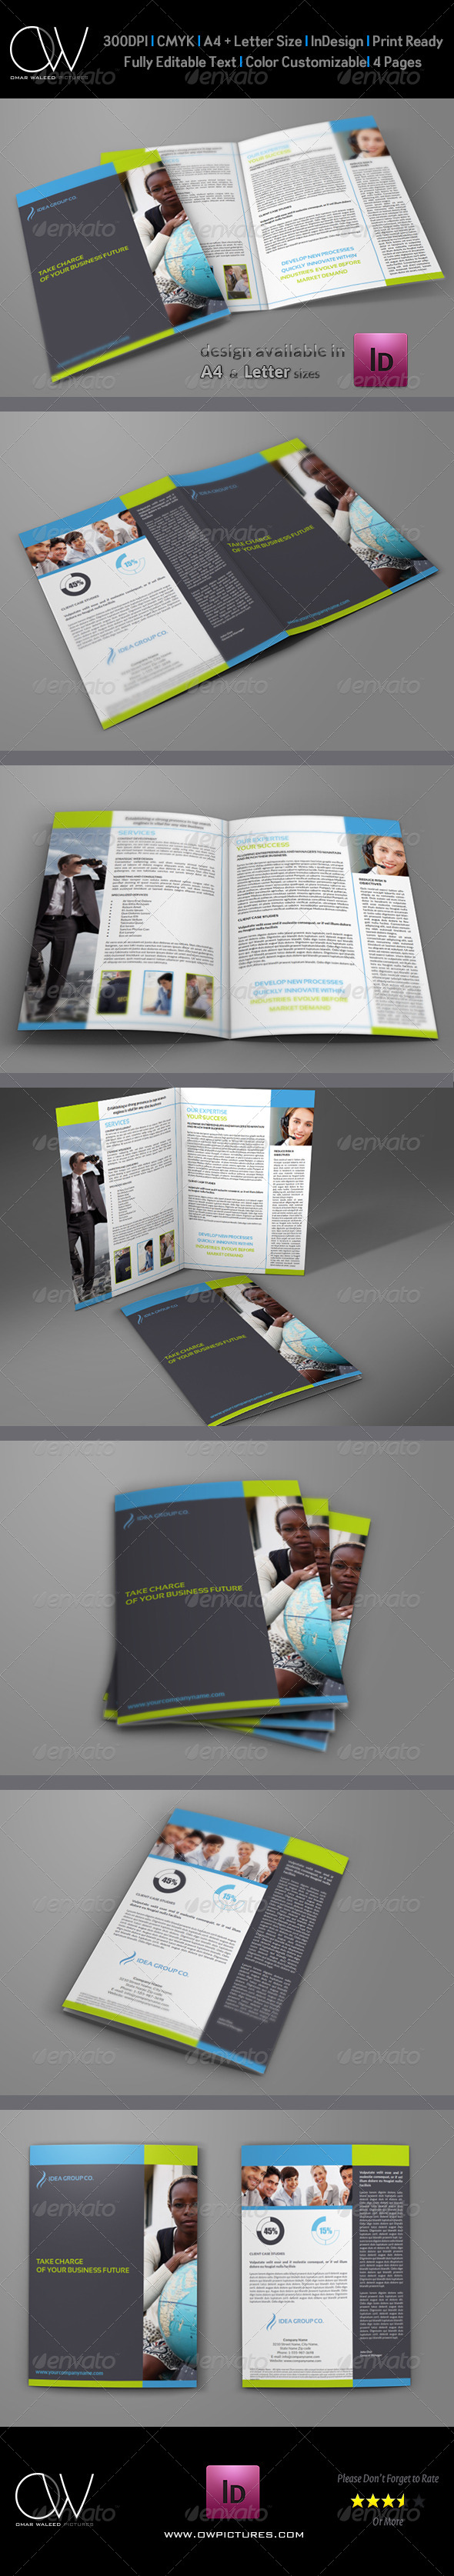 GraphicRiver Company Brochure Bi-Fold Template Vol.13 6457207